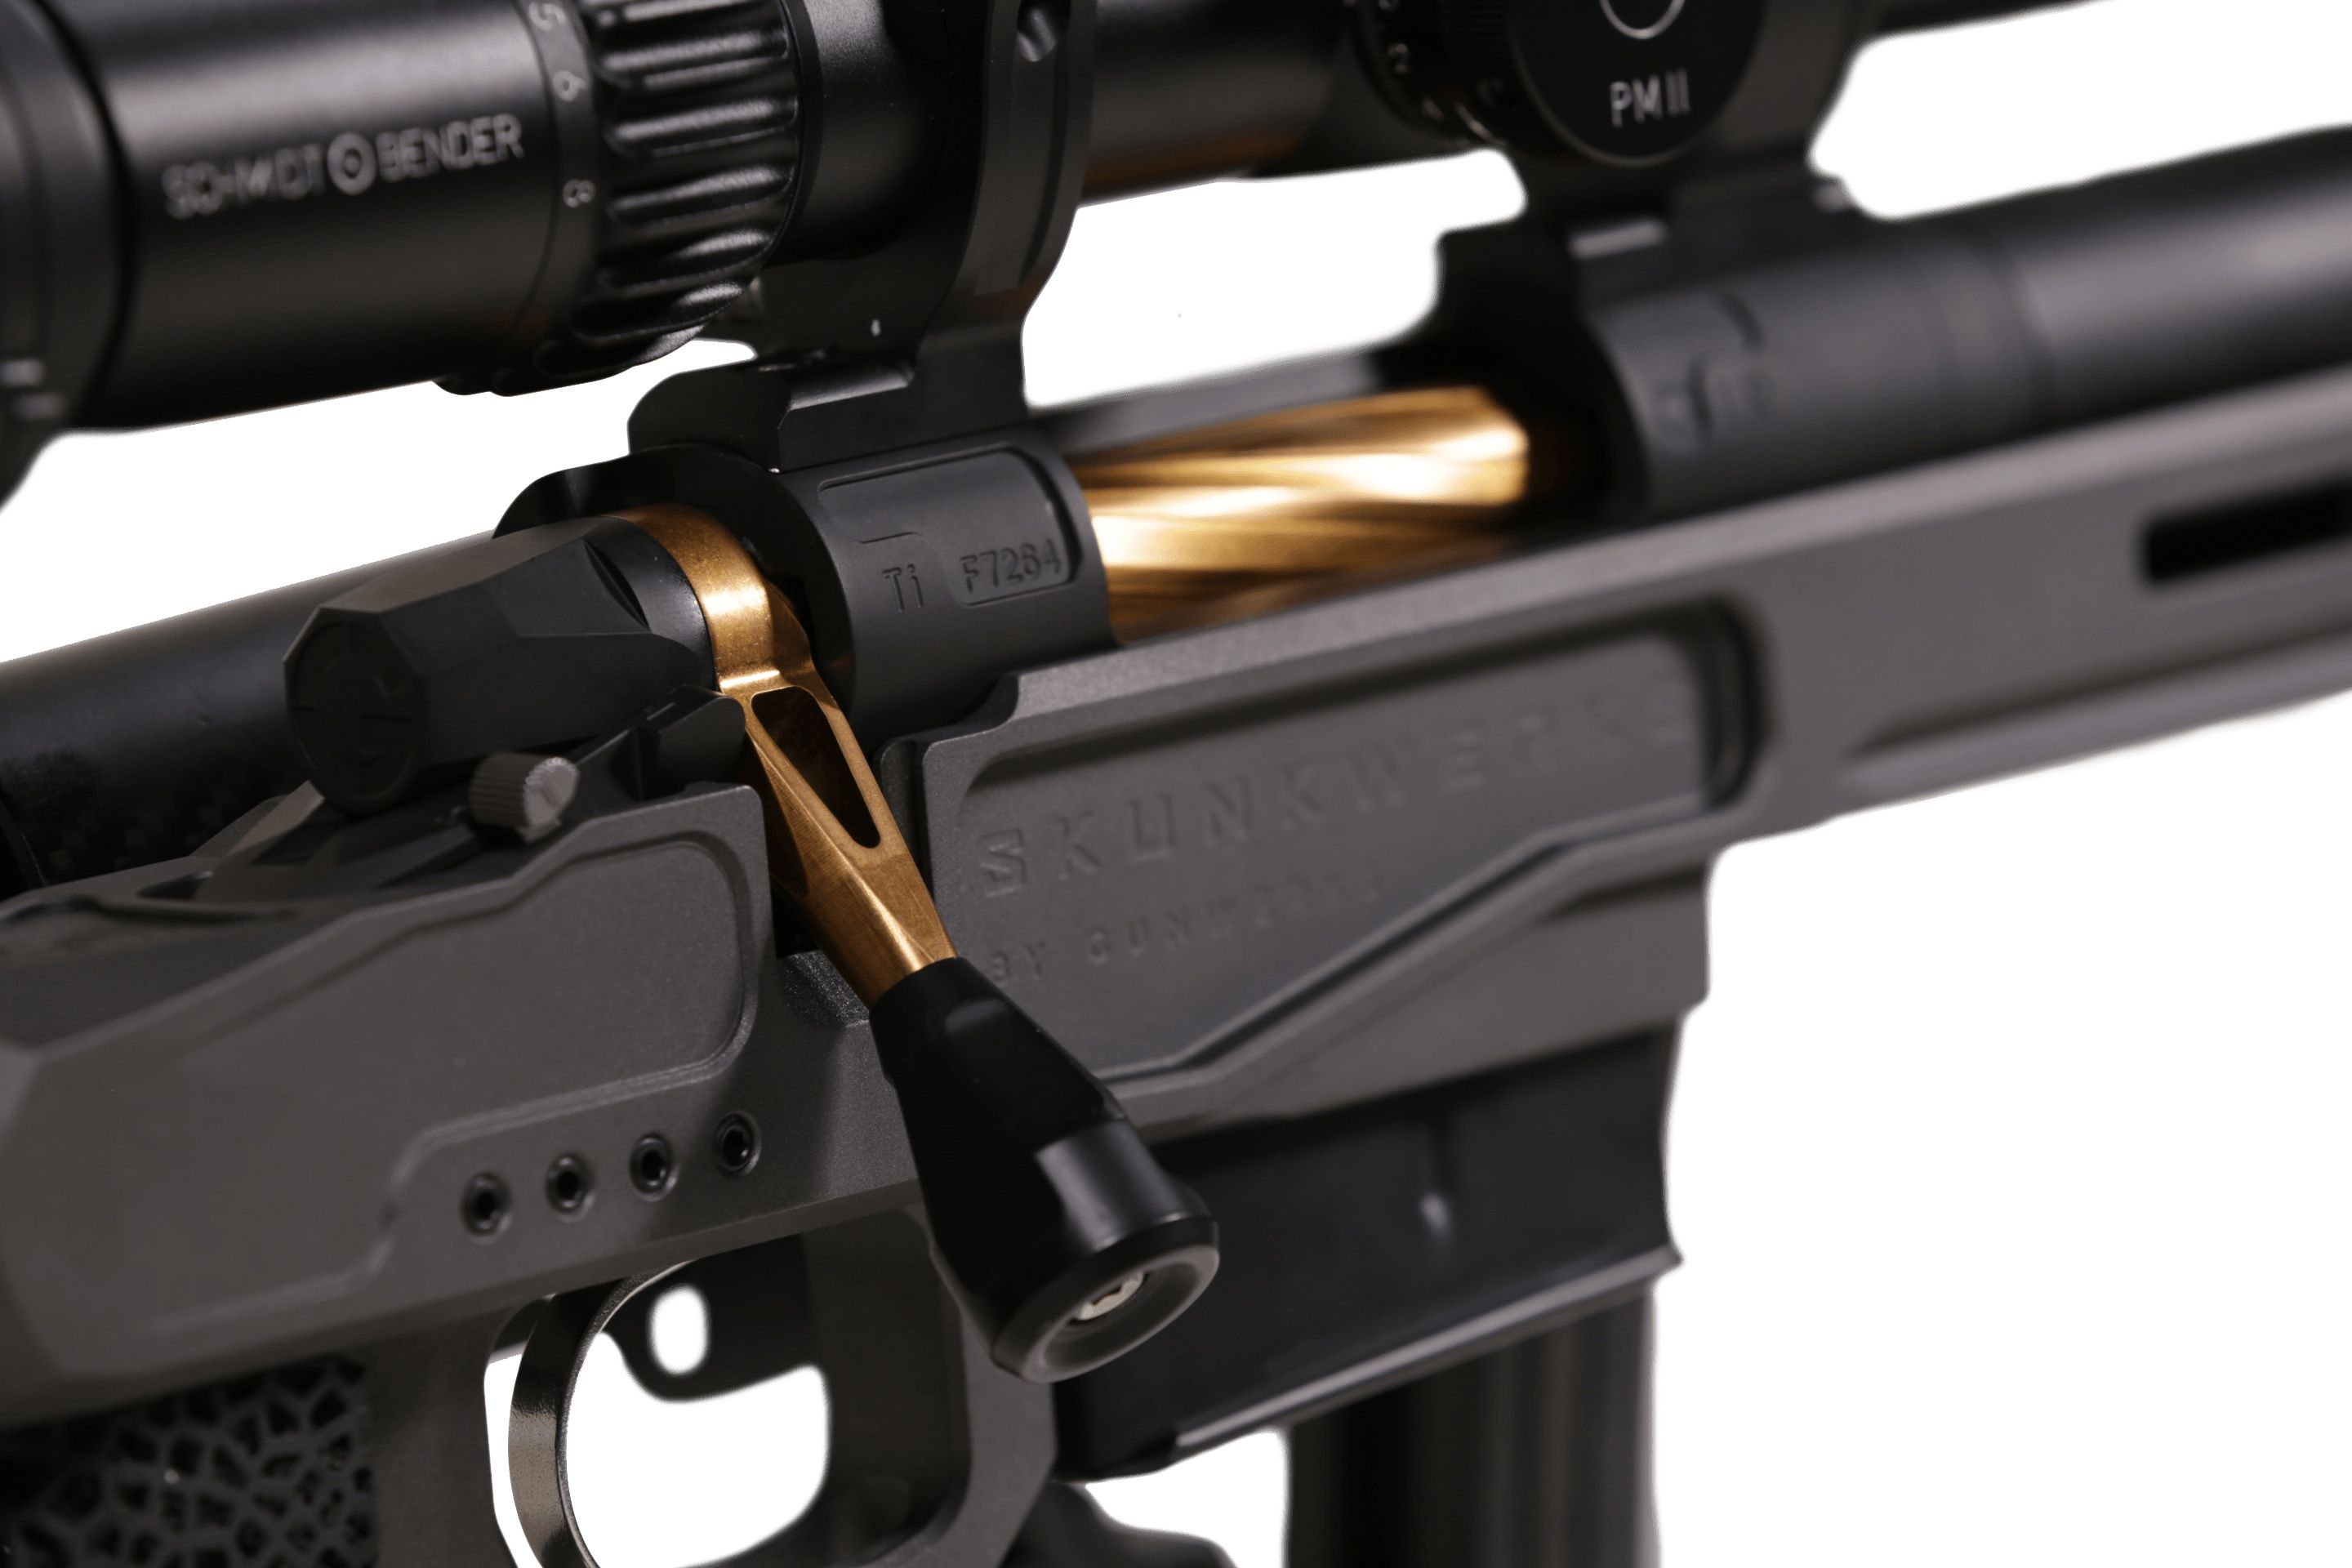 GUNWERKS RELEASES THE LITE SABR INTEGRALLY SUPPRESSED 338 RCM RIFLE